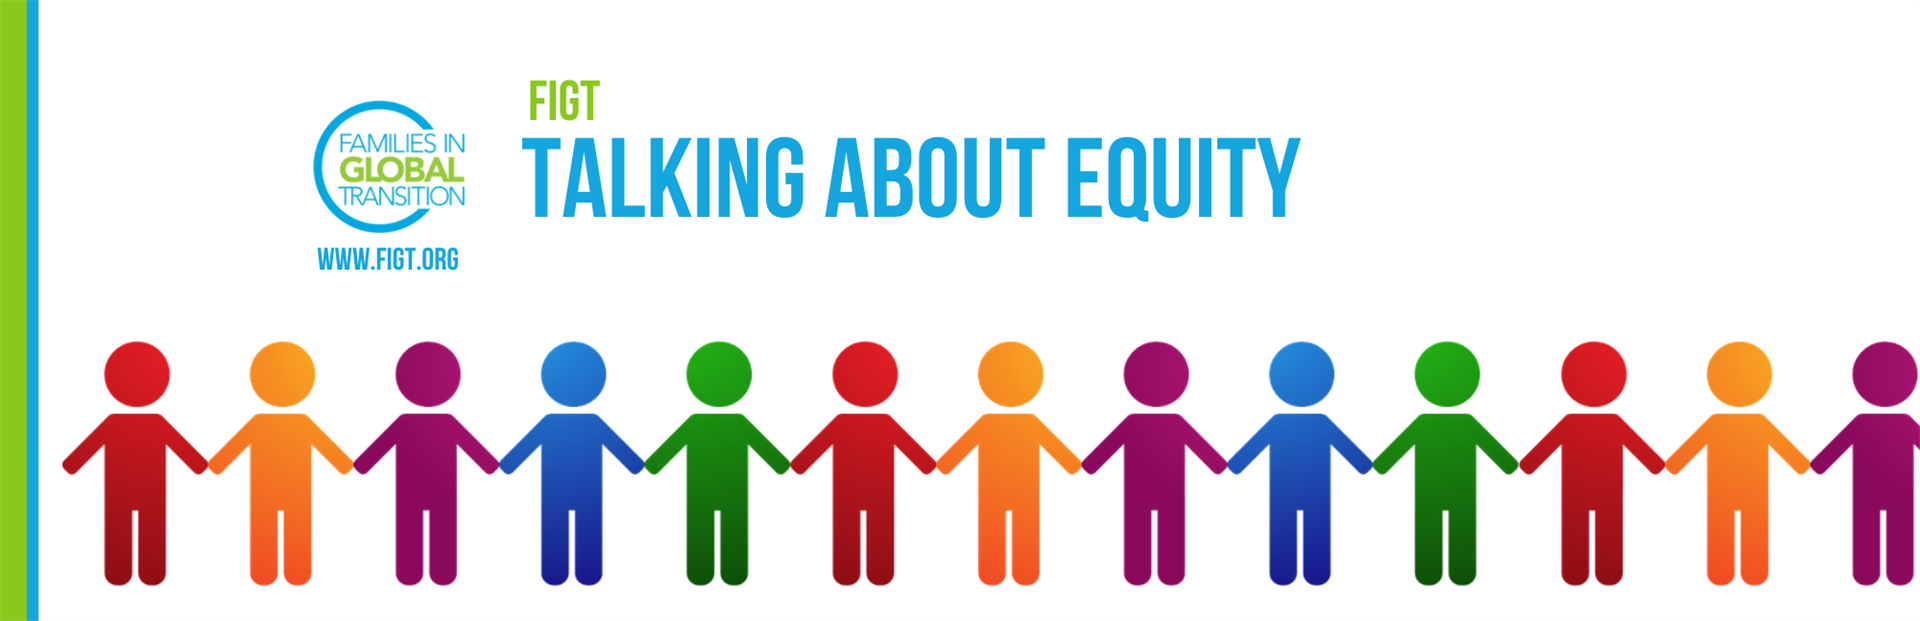 FIGT: Talking about equity, image of many colorful people figures holding hands